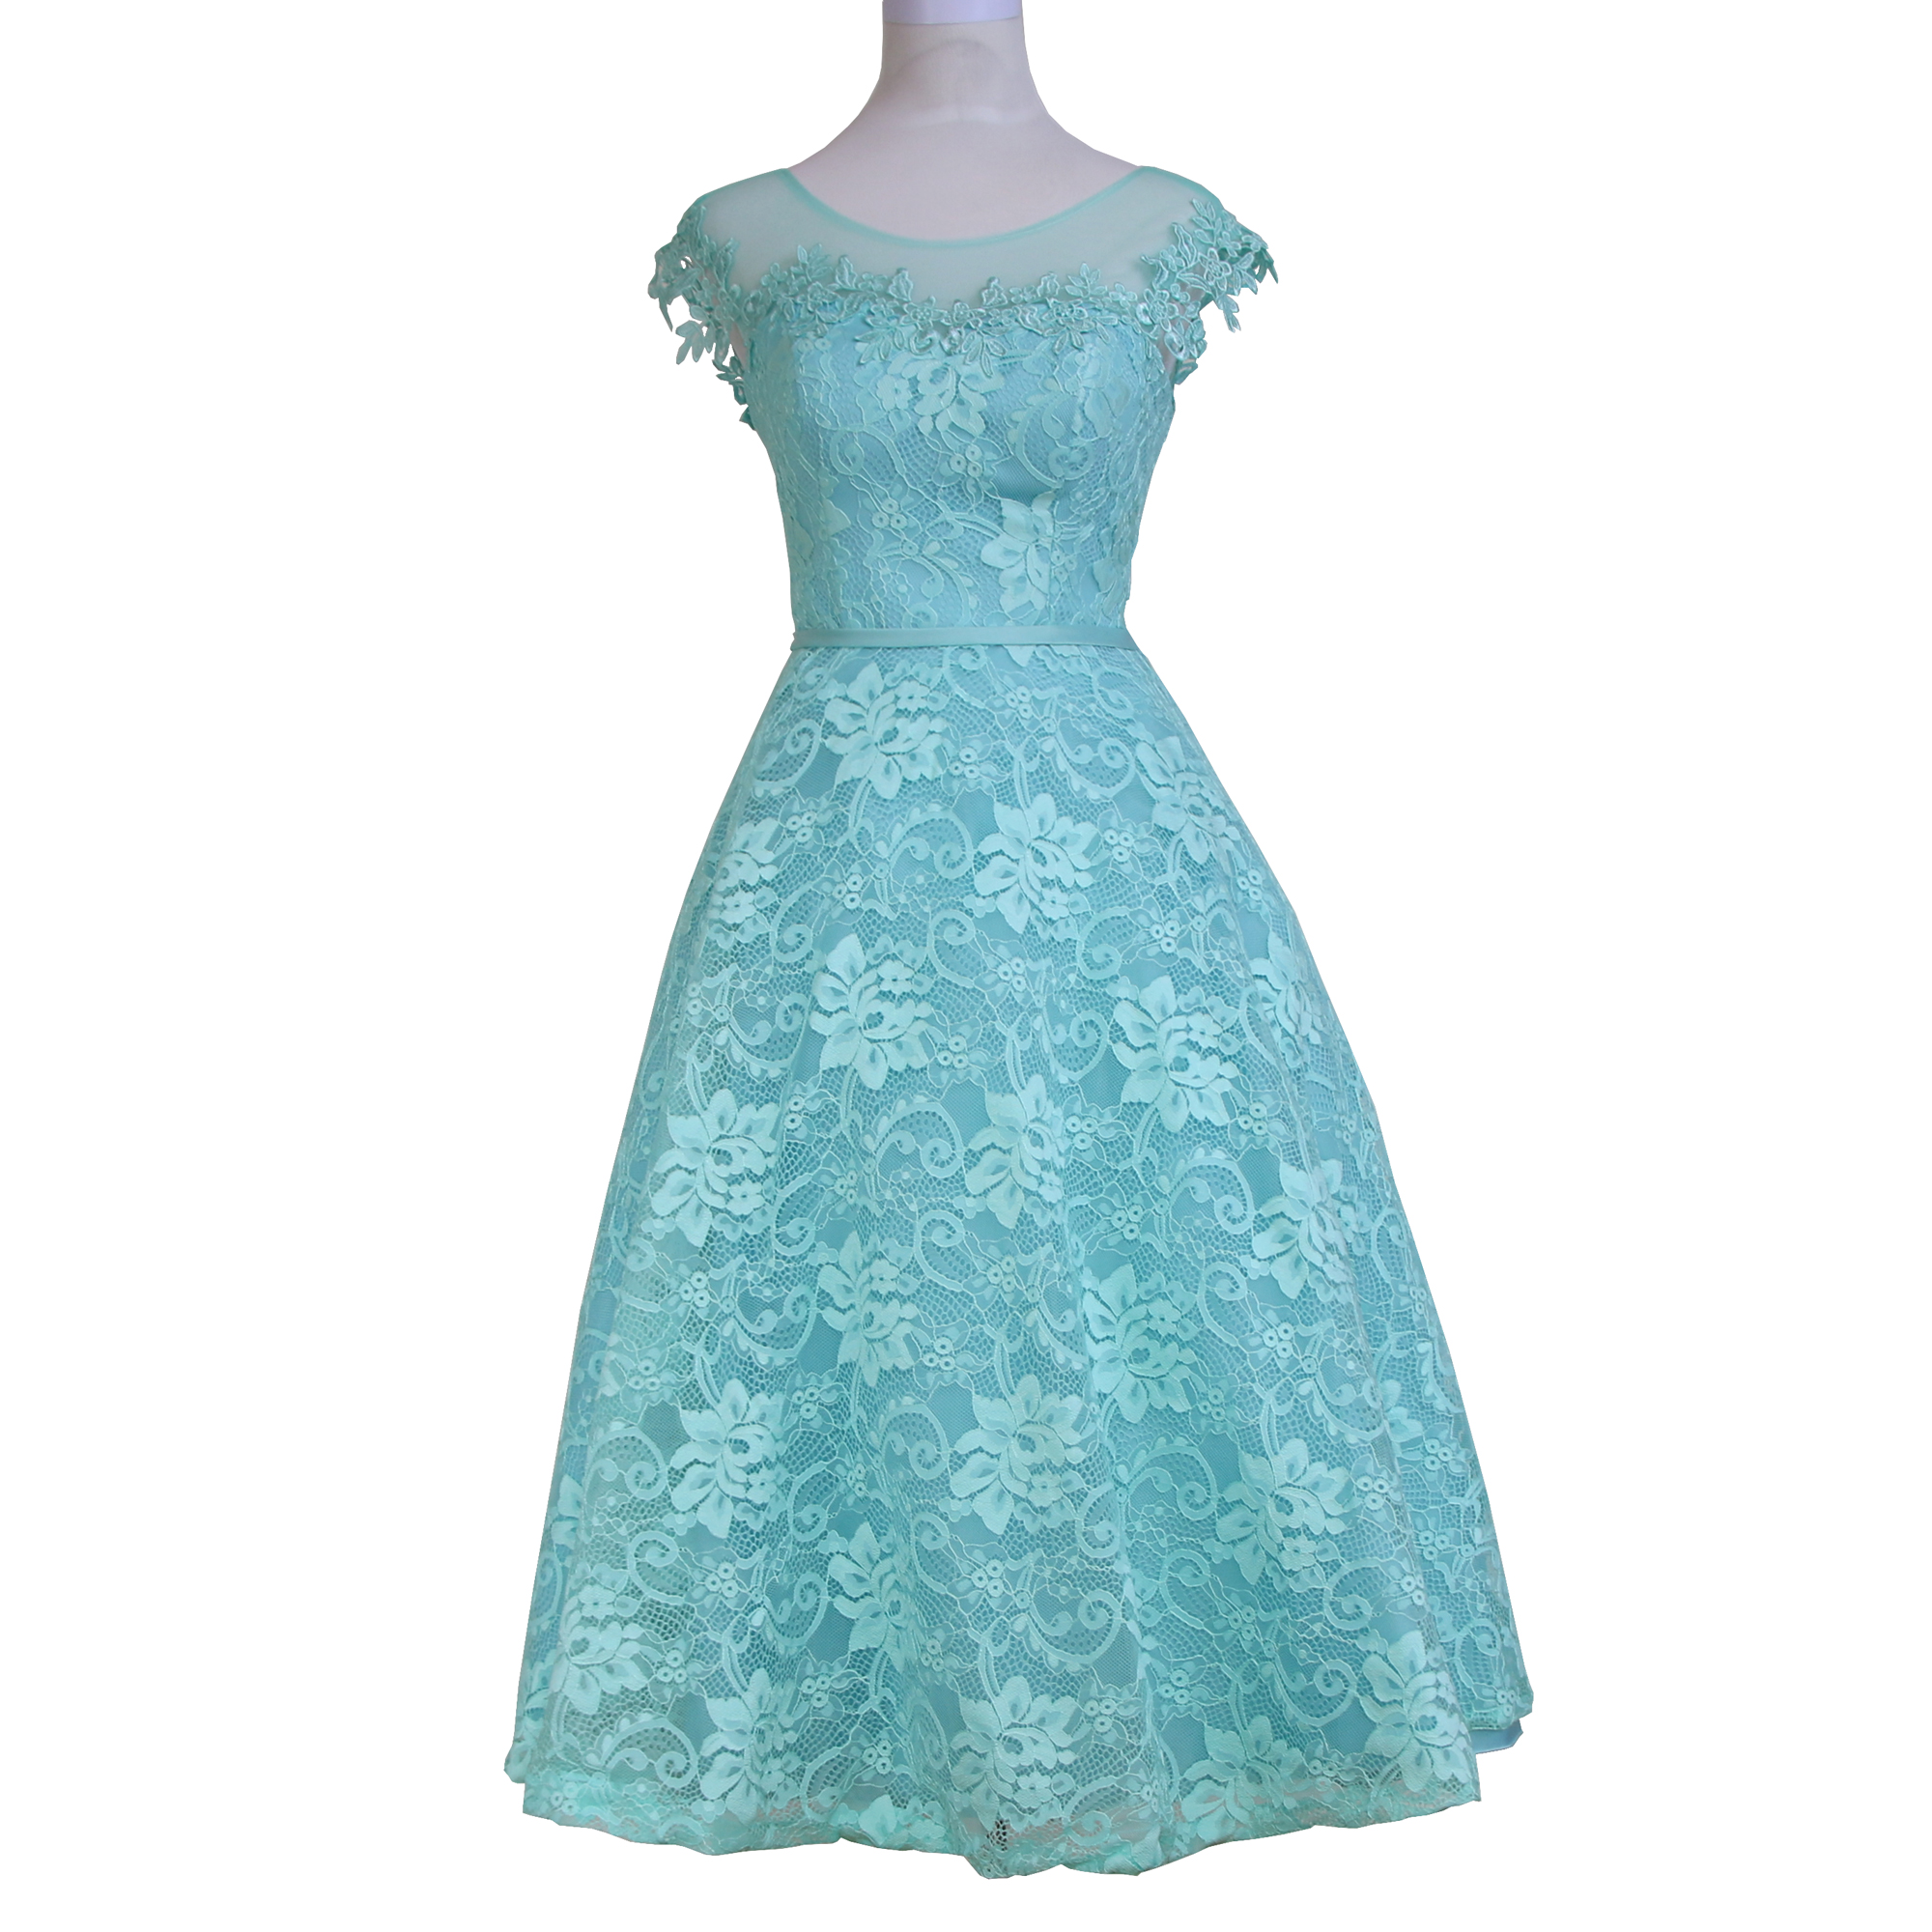 83cee98b57bd New Arrival Ice Blue Appliques Lace Tea Length Party Prom Dresses Robe De  Soiree Short Formal Evening Gowns Vestidos Festa GQ70-in Prom Dresses from  ...